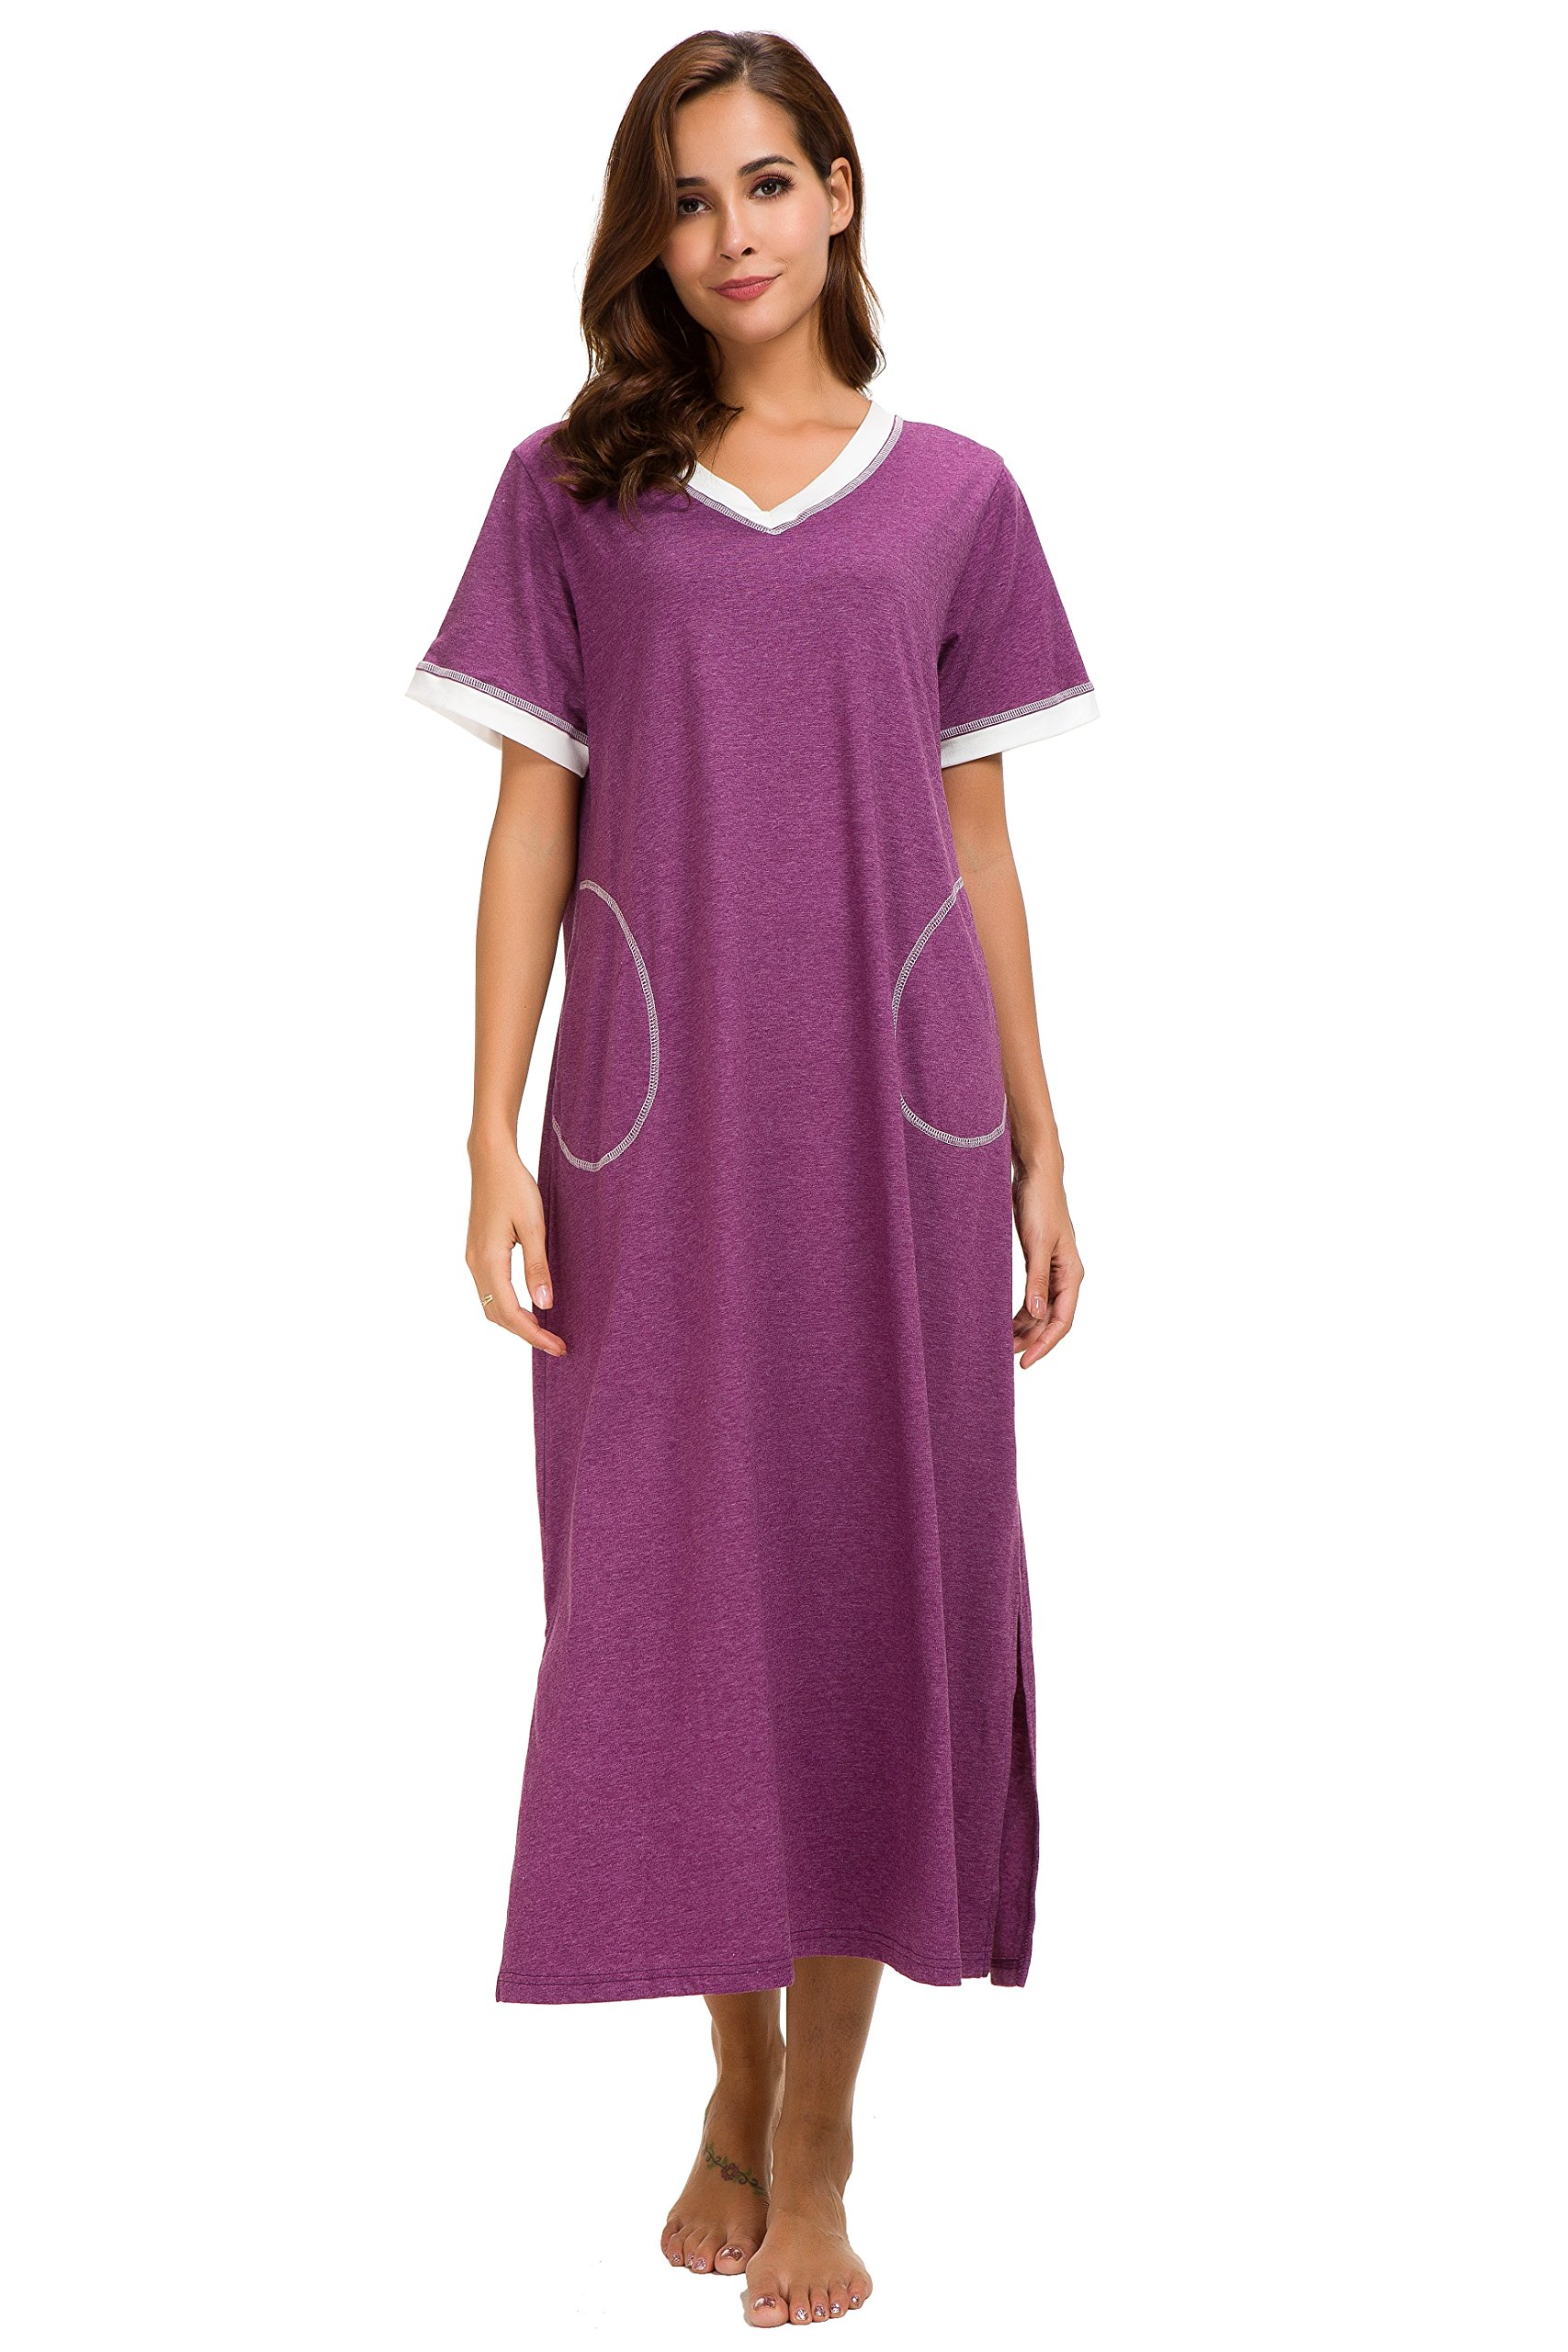 Aviier Long Nightgown with Side Pockets V Neck Short Sleeve Maxi Sleepshirt Ultra Soft (Purple, L)